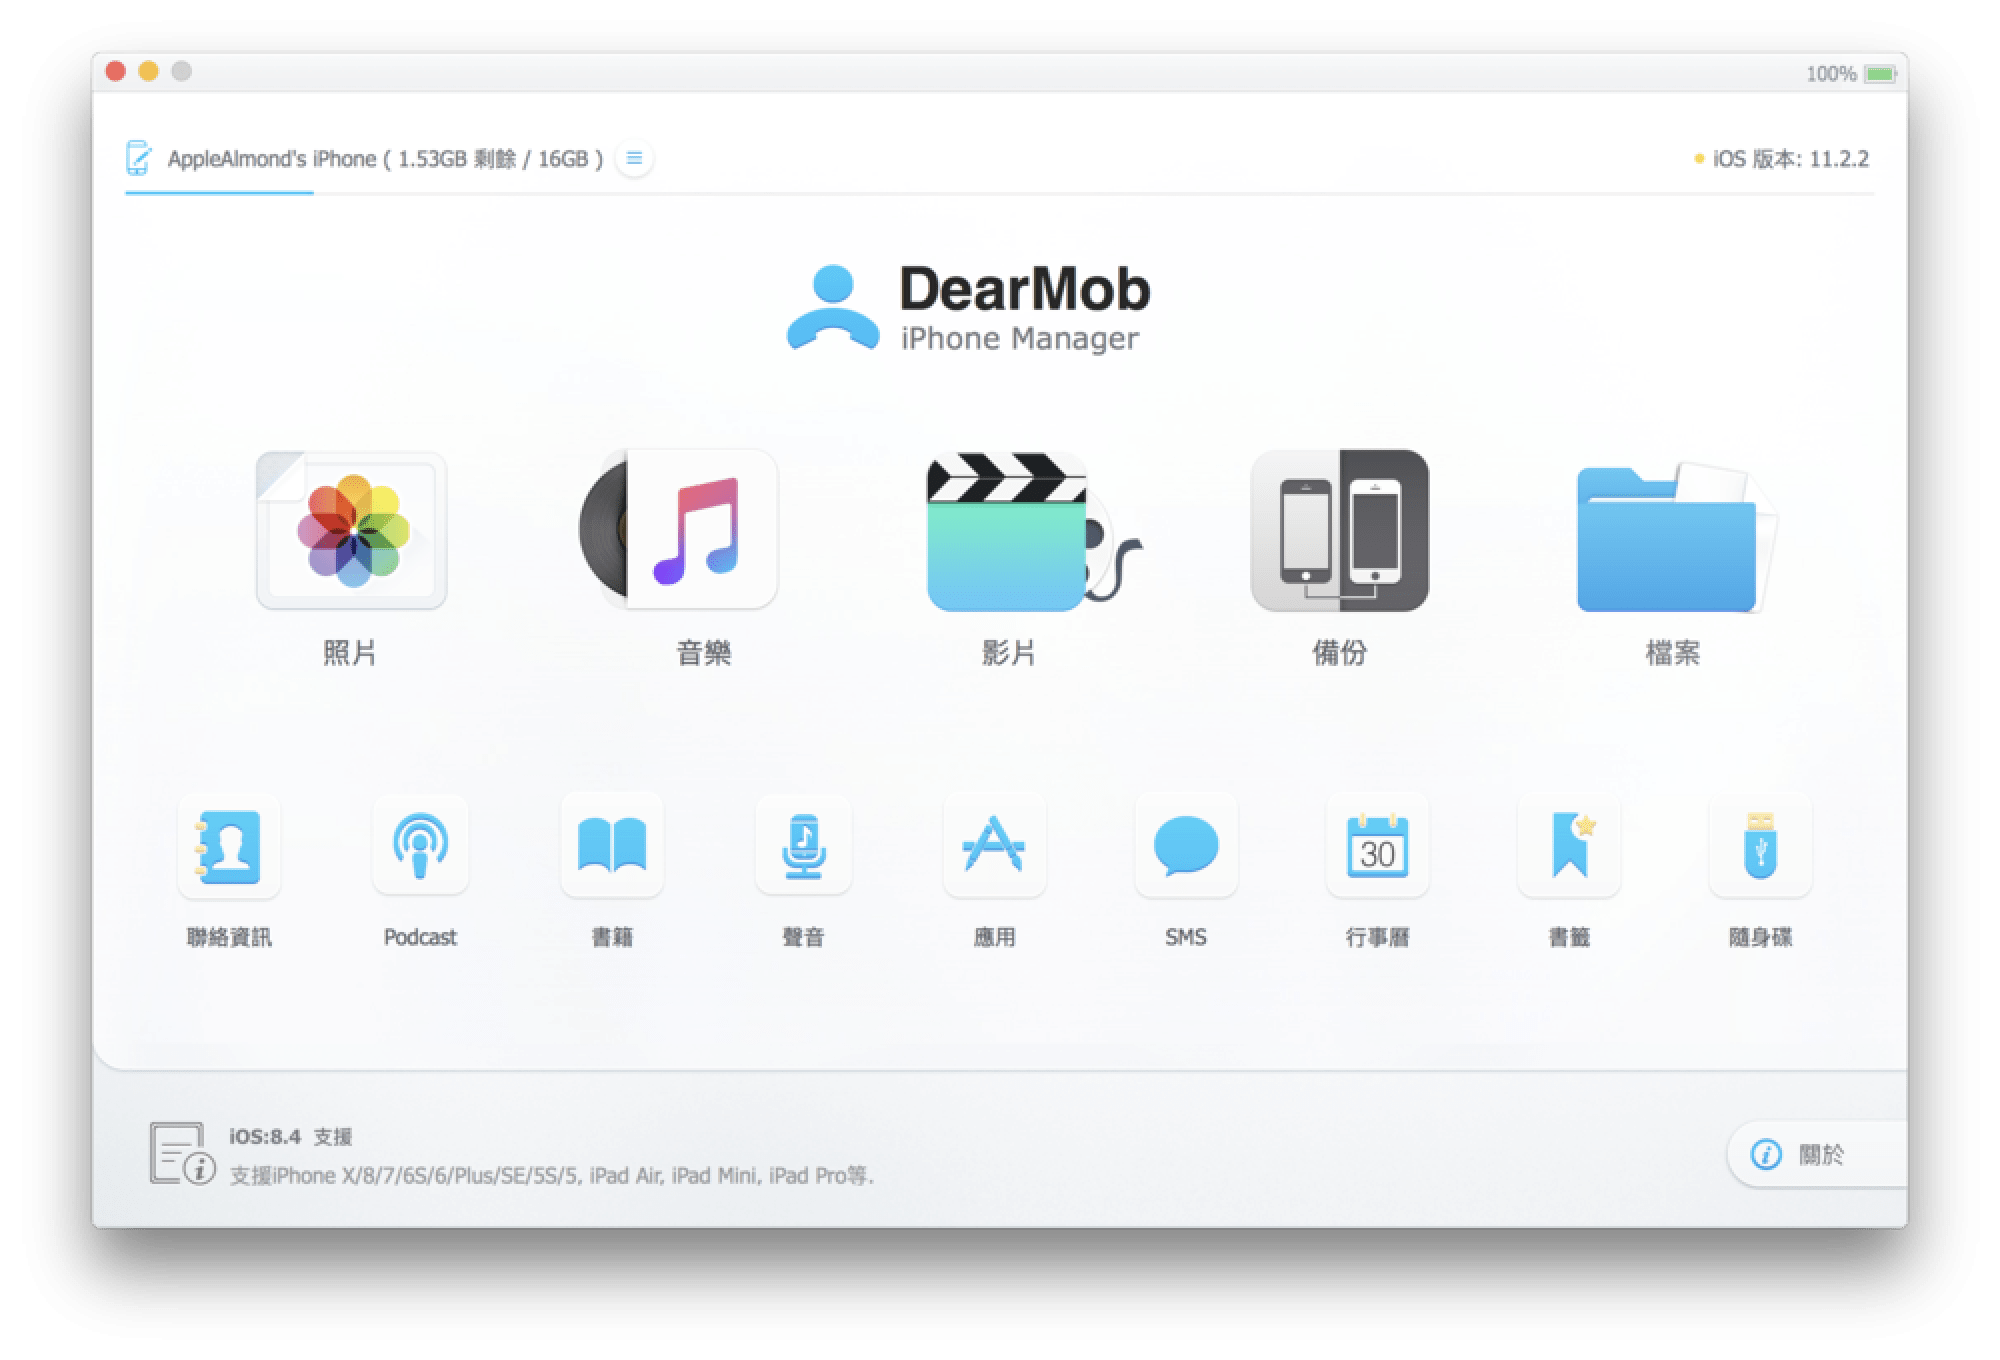 DearMob iPhone Manager 1